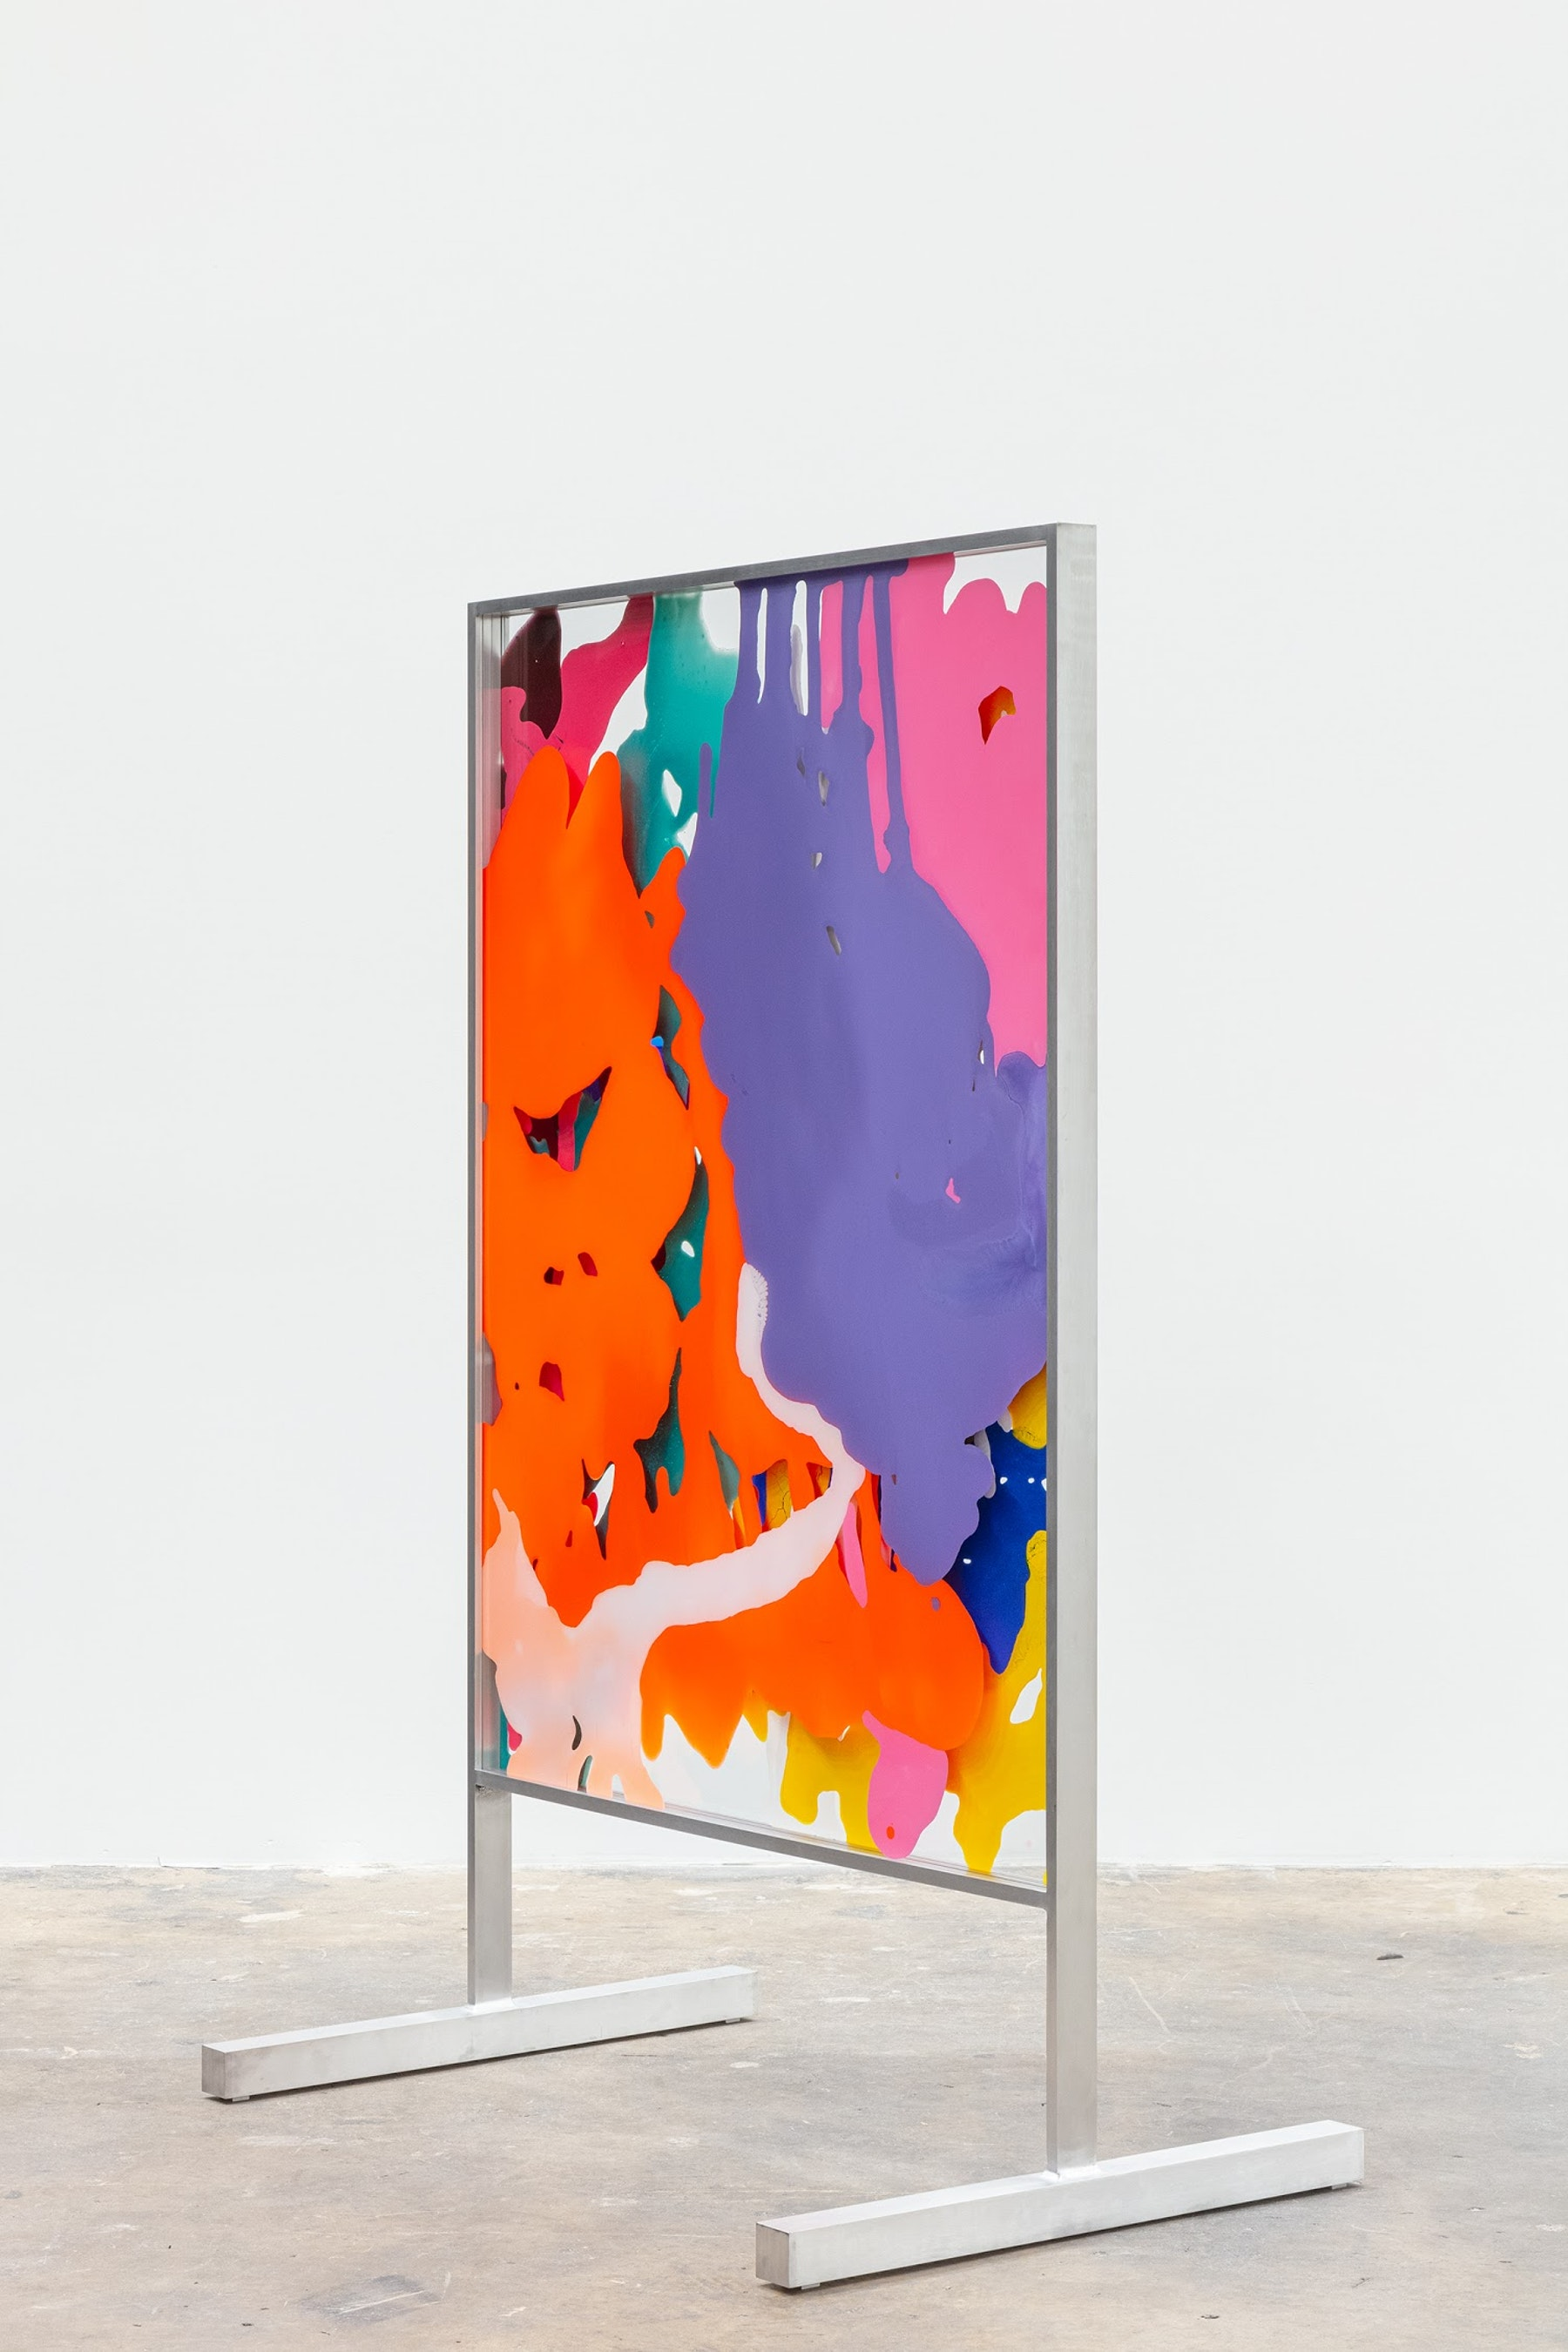 """Yunhee Min """"Vitreous Opacities (Double Floor #4),"""" 2021 Enamel, acrylic on tempered starphire glass with custom aluminum frame 65 ¹⁄₄"""" x 42 ¹⁄₄"""" x 28 ¹⁄₂"""" [HxWxD] (165.74 x 107.32 x 72.39 cm) Inventory #MIN358 Courtesy of the artist and Vielmetter Los Angeles Photo credit: Evan Bedford"""